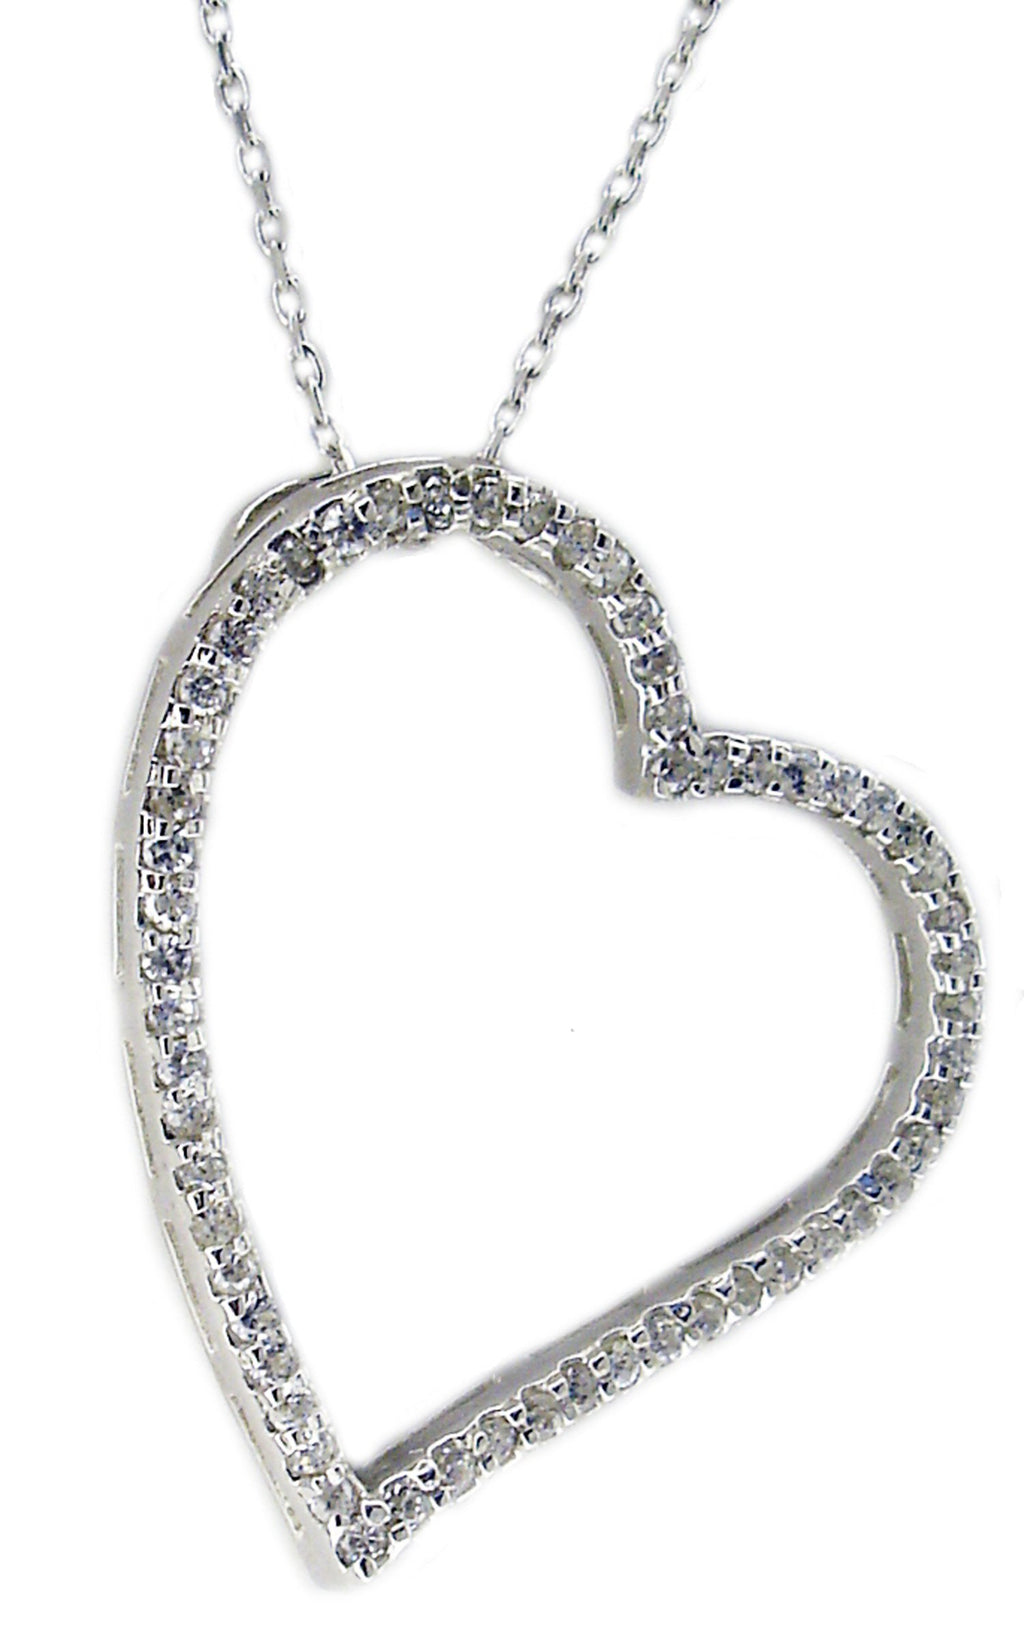 Sideways Sterling Silver Charming Open Heart Pendant completed by brilliant cubic zirconia stones all around